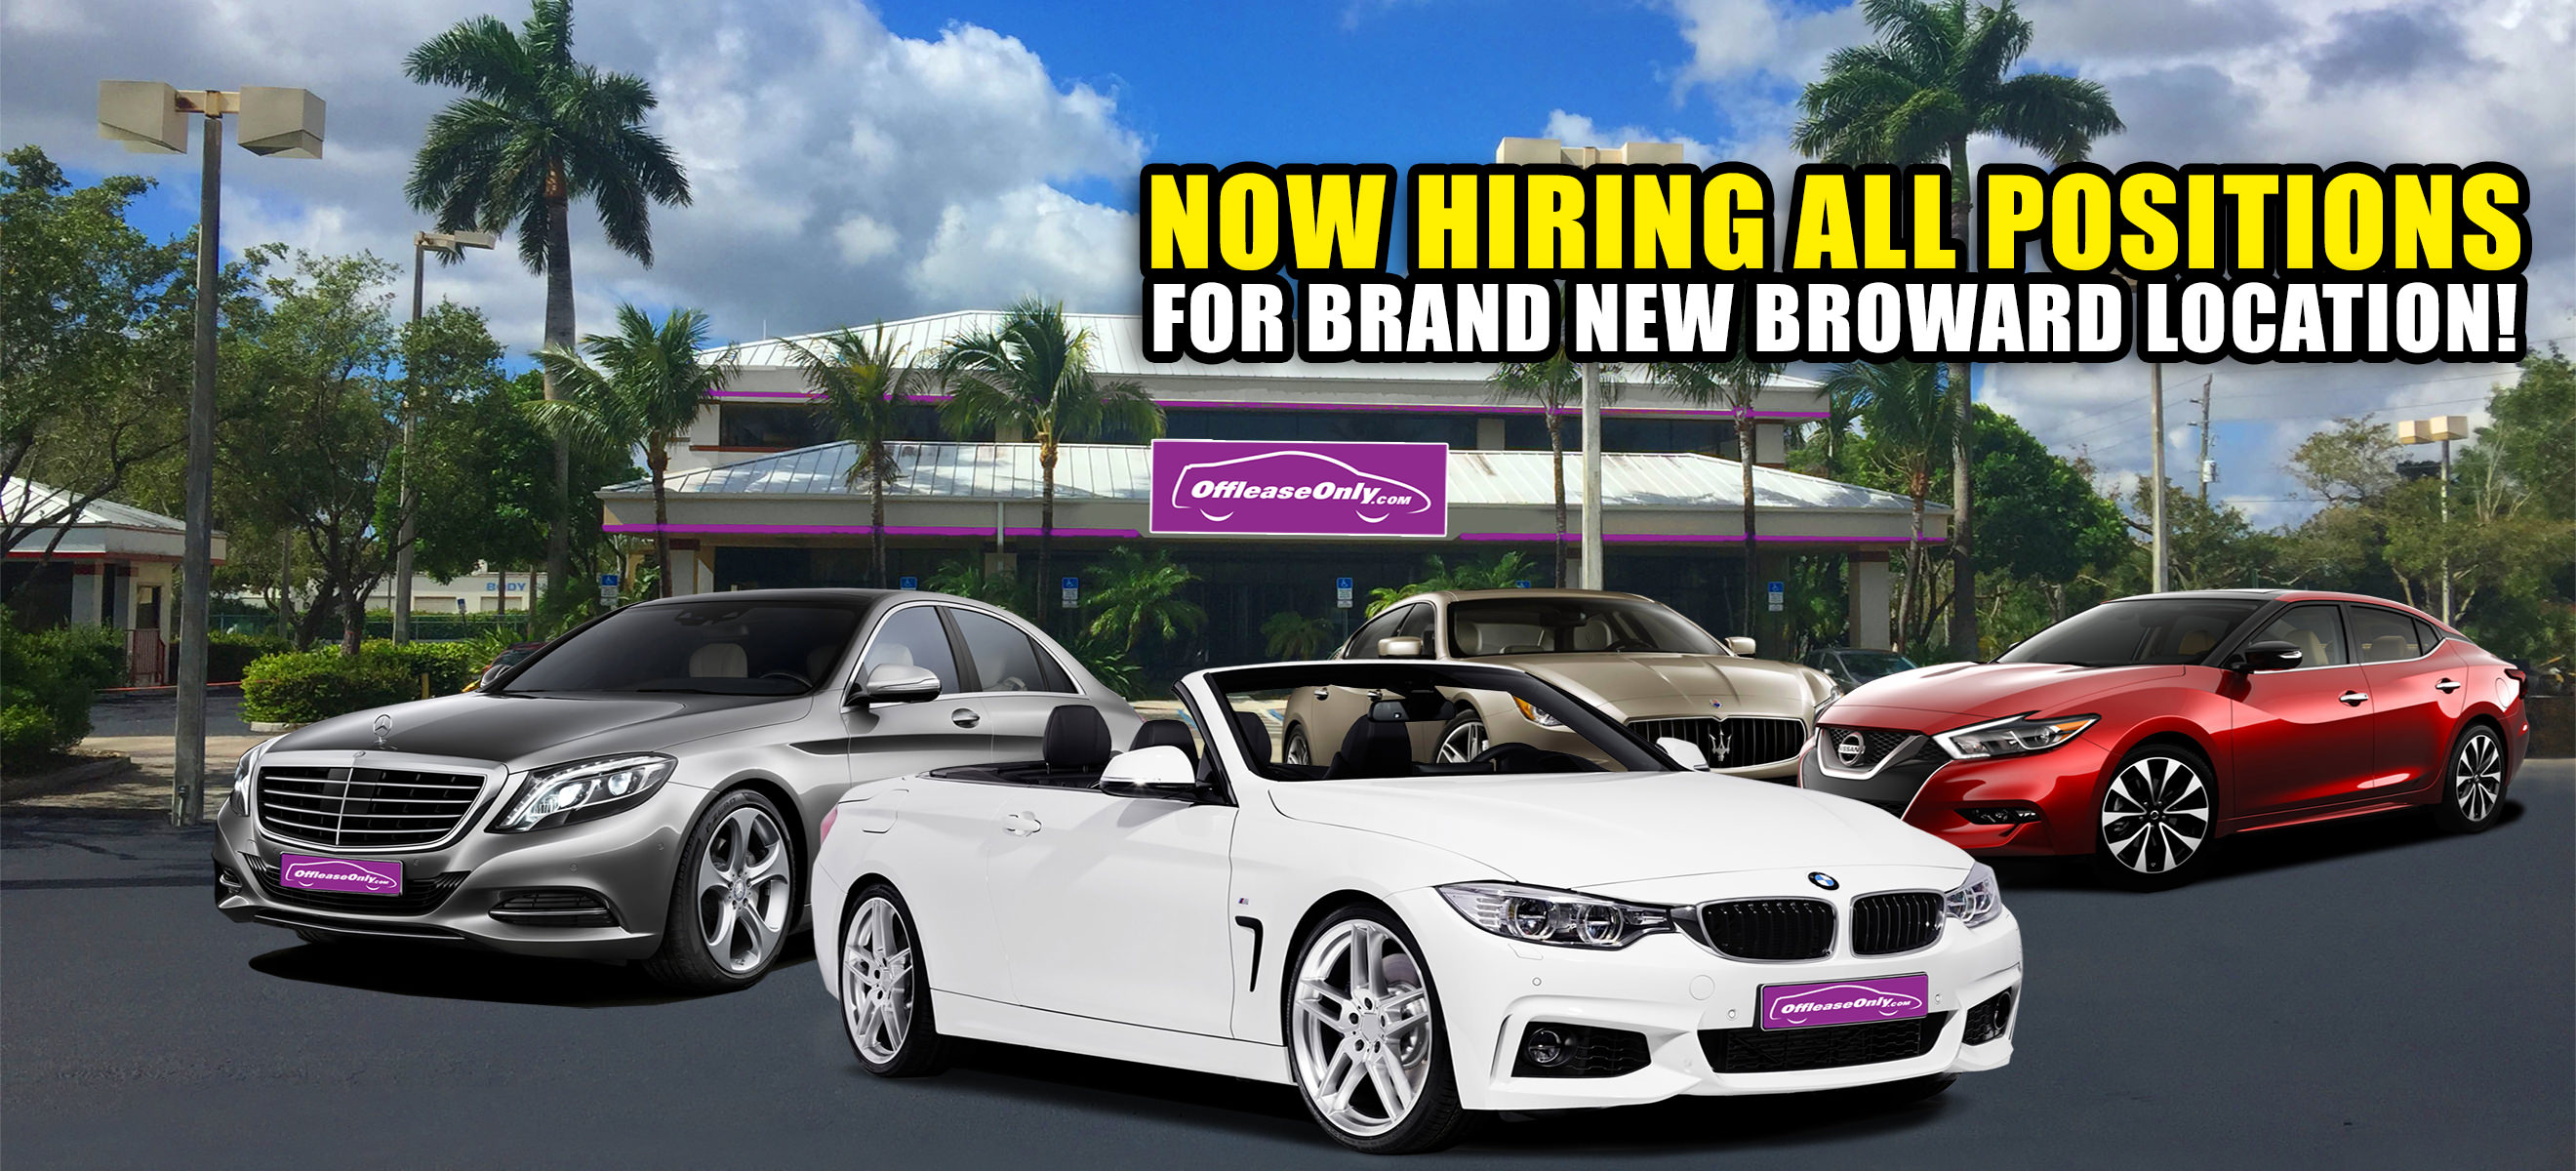 Off Lease West Palm Beach >> Off Lease orlando | New Car Release Information